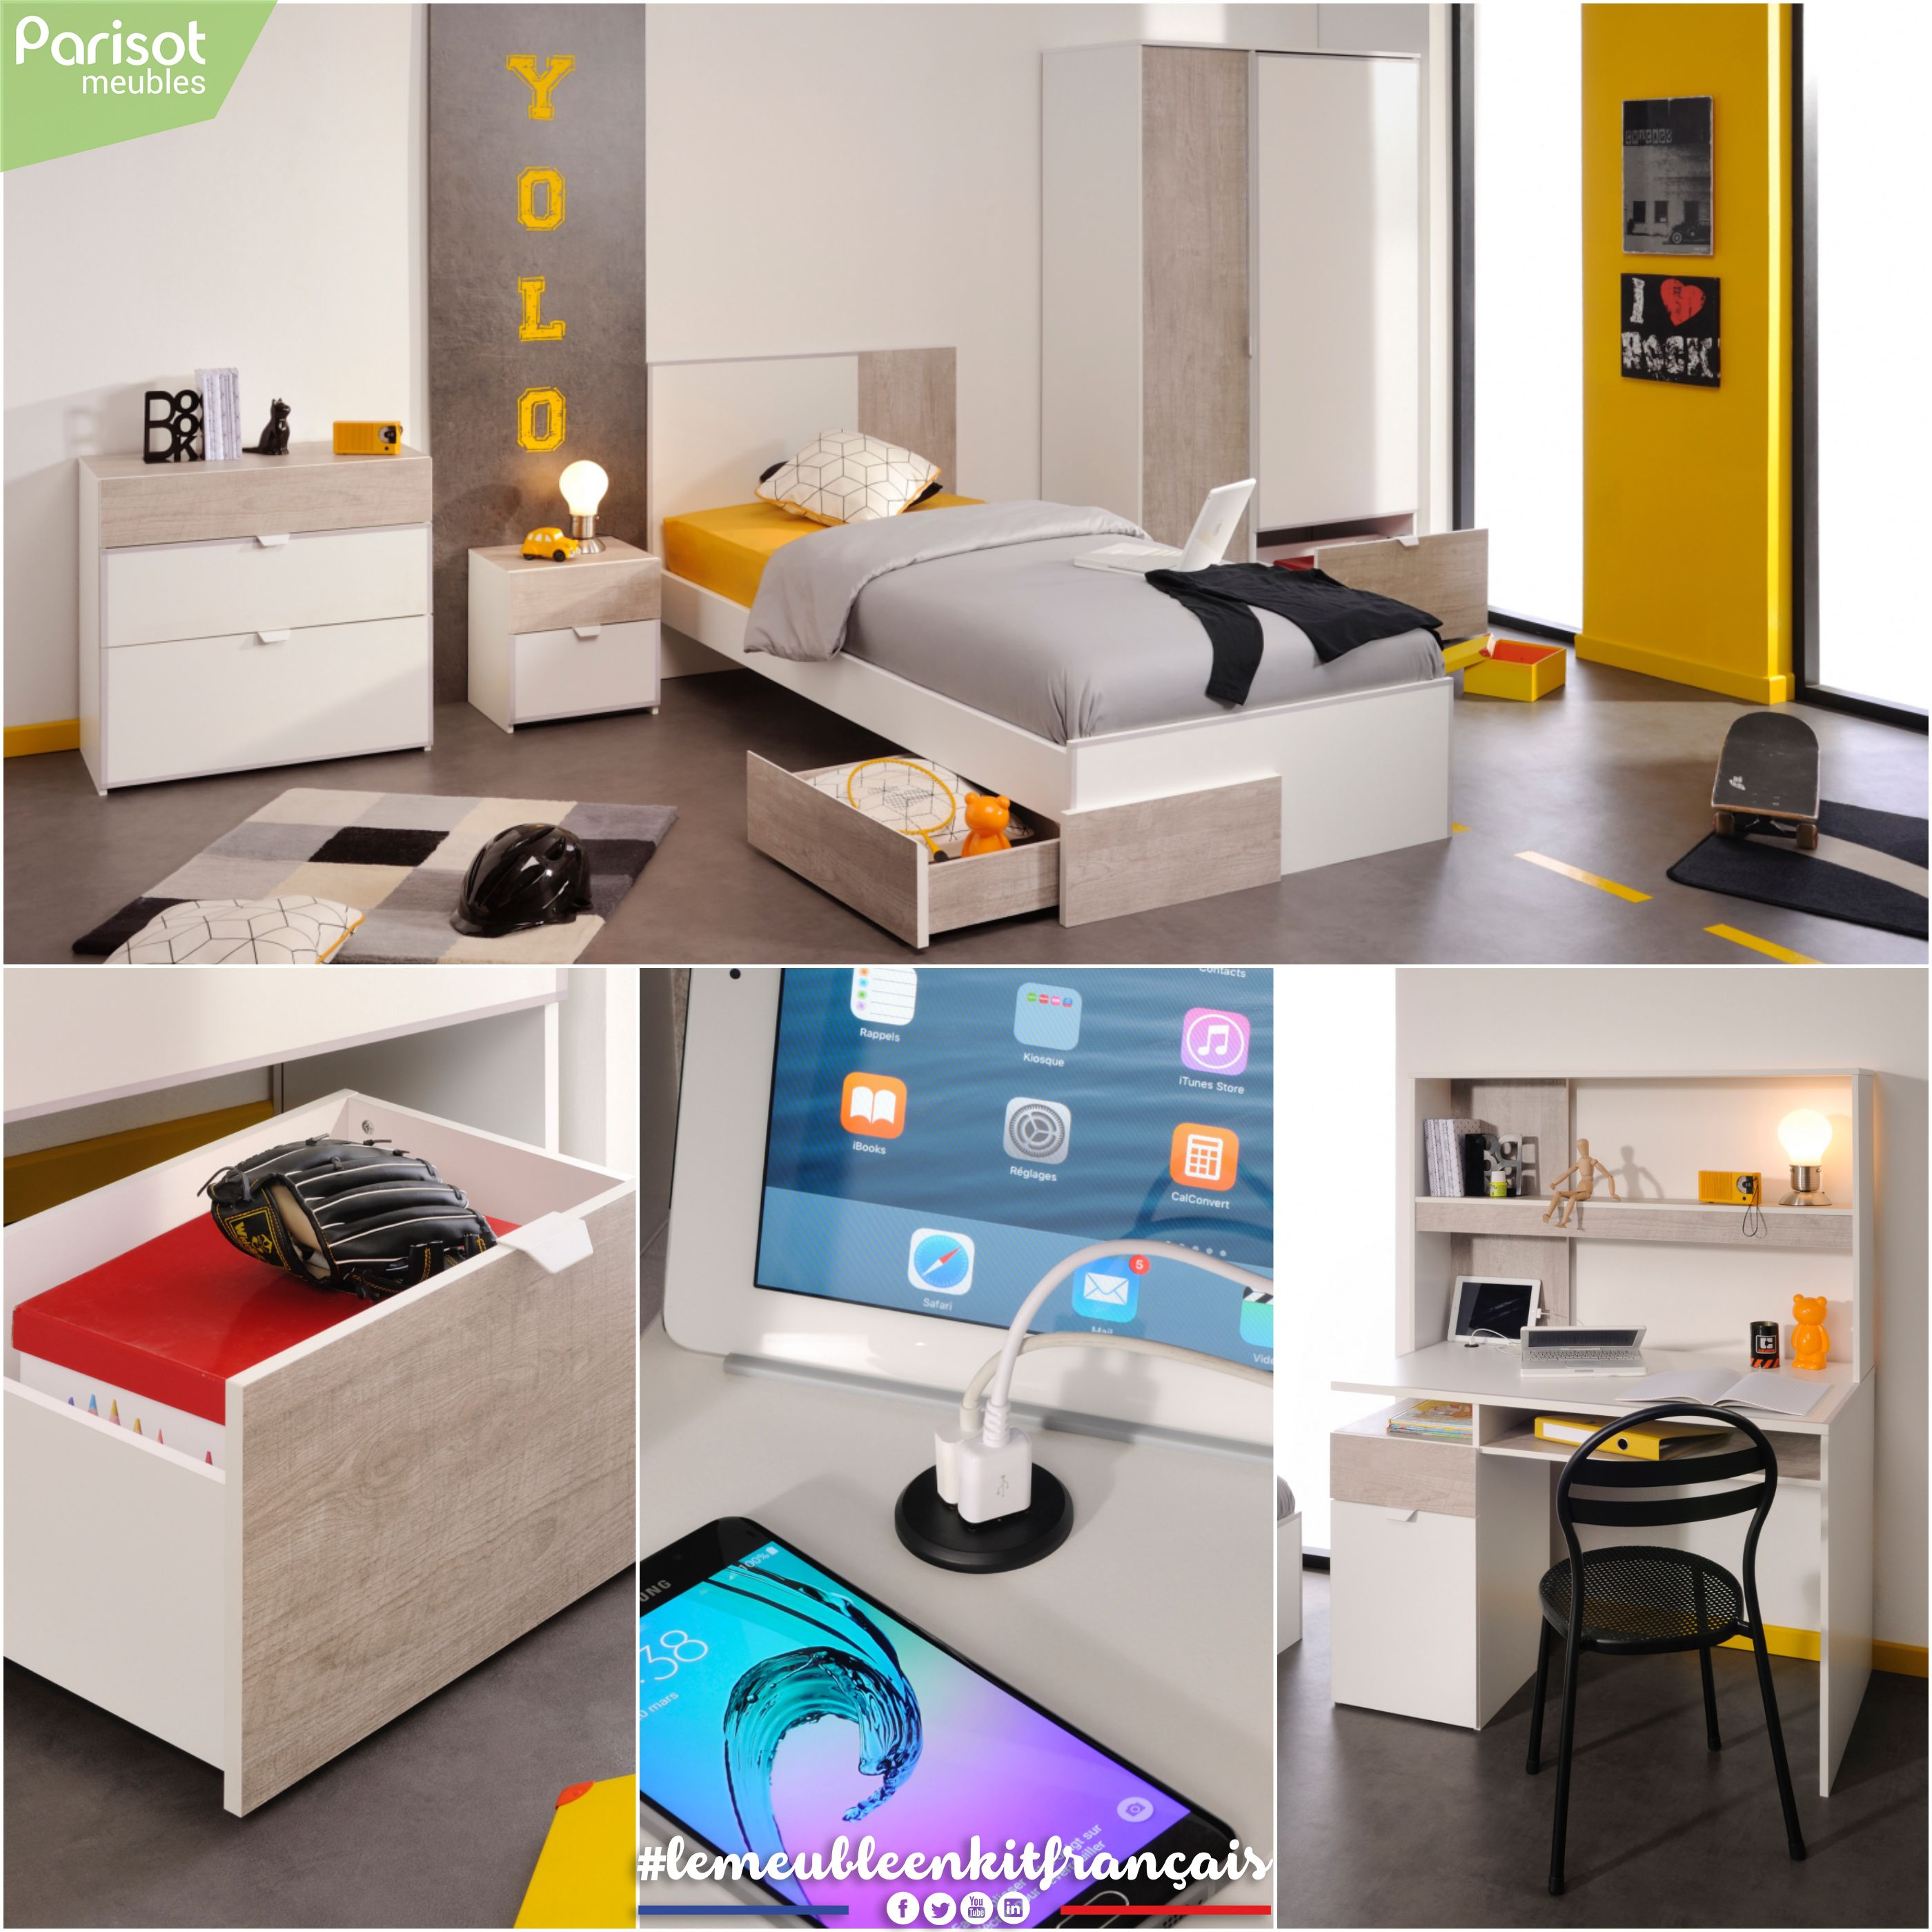 Yolo By Parisot Meubles A Range Bringing Optimised And Connected Functions Perfectly Adapted To The New Teenagers Desires Optimization Bring It On Function